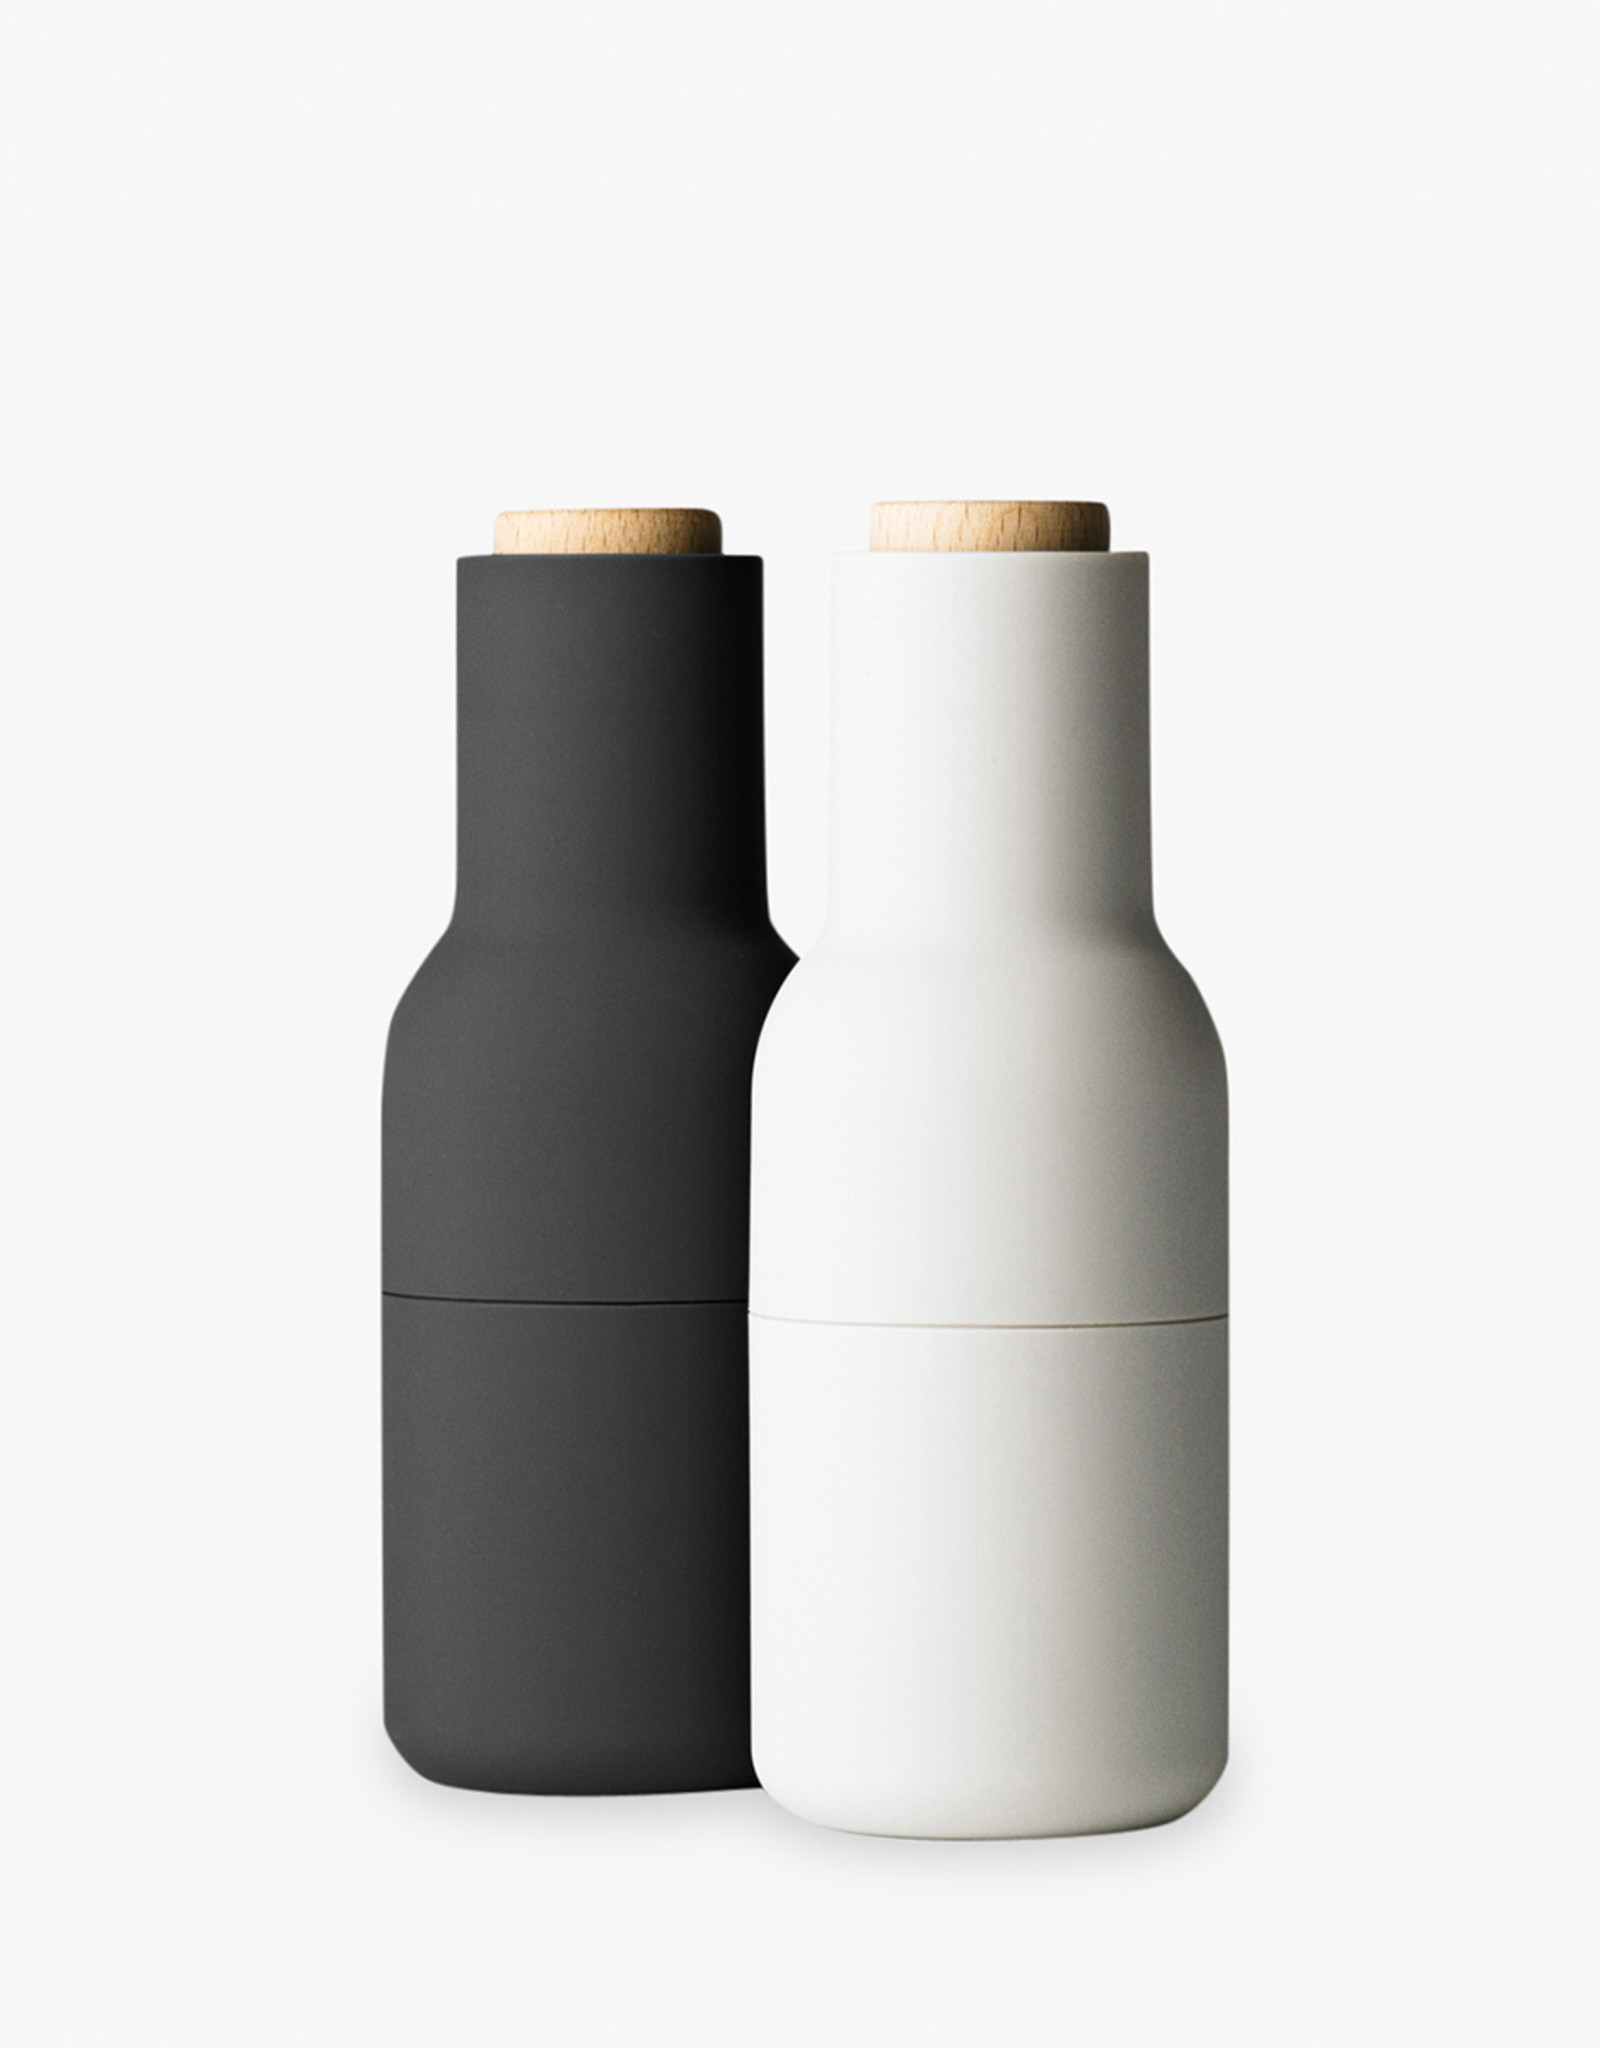 Bottle Grinders set by Norm Architects | Carbon/ash | Beech lid